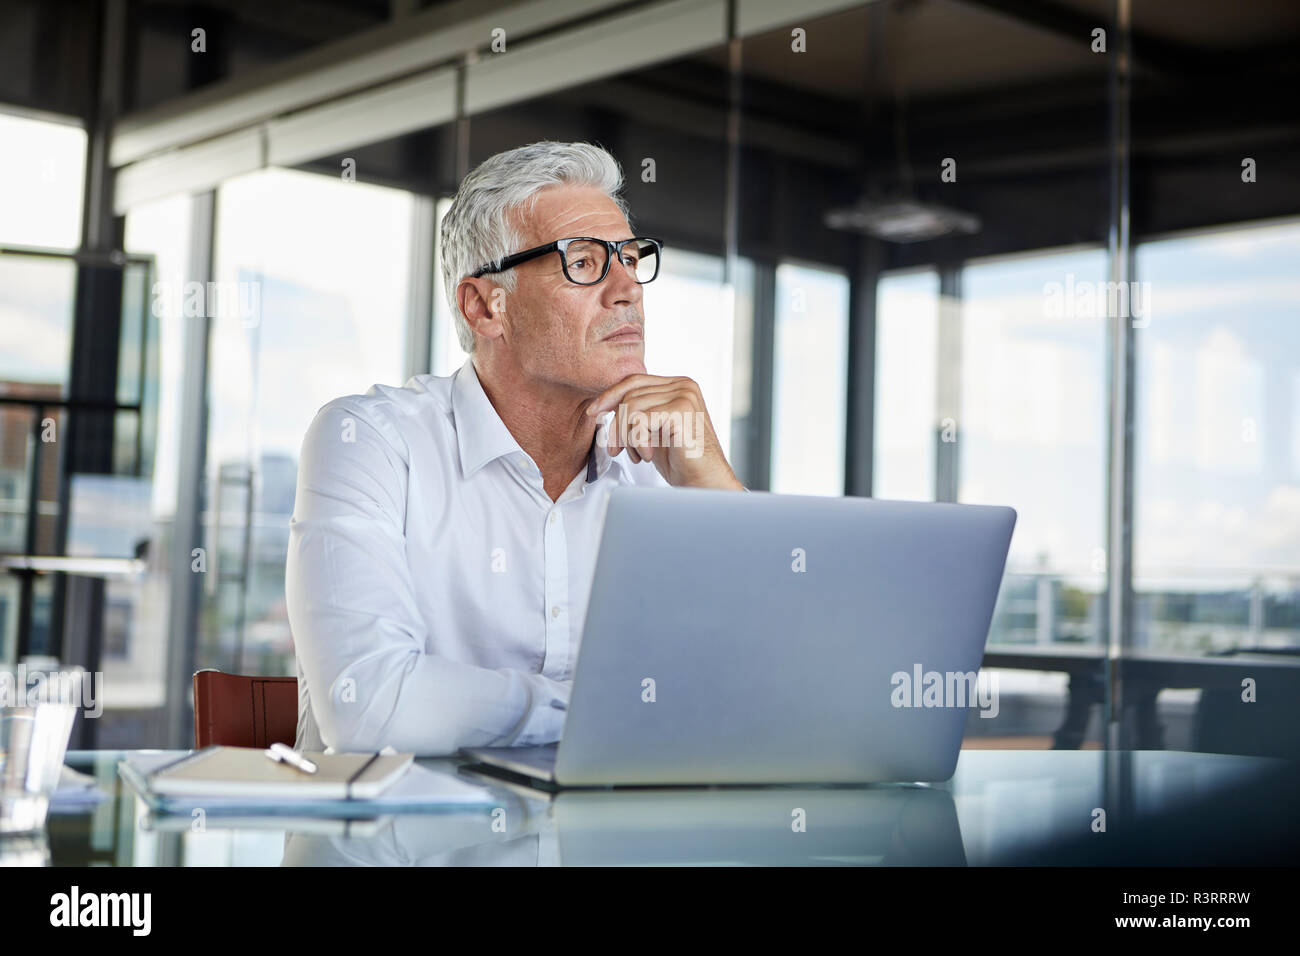 Businessman sitting in office, thinking Stock Photo